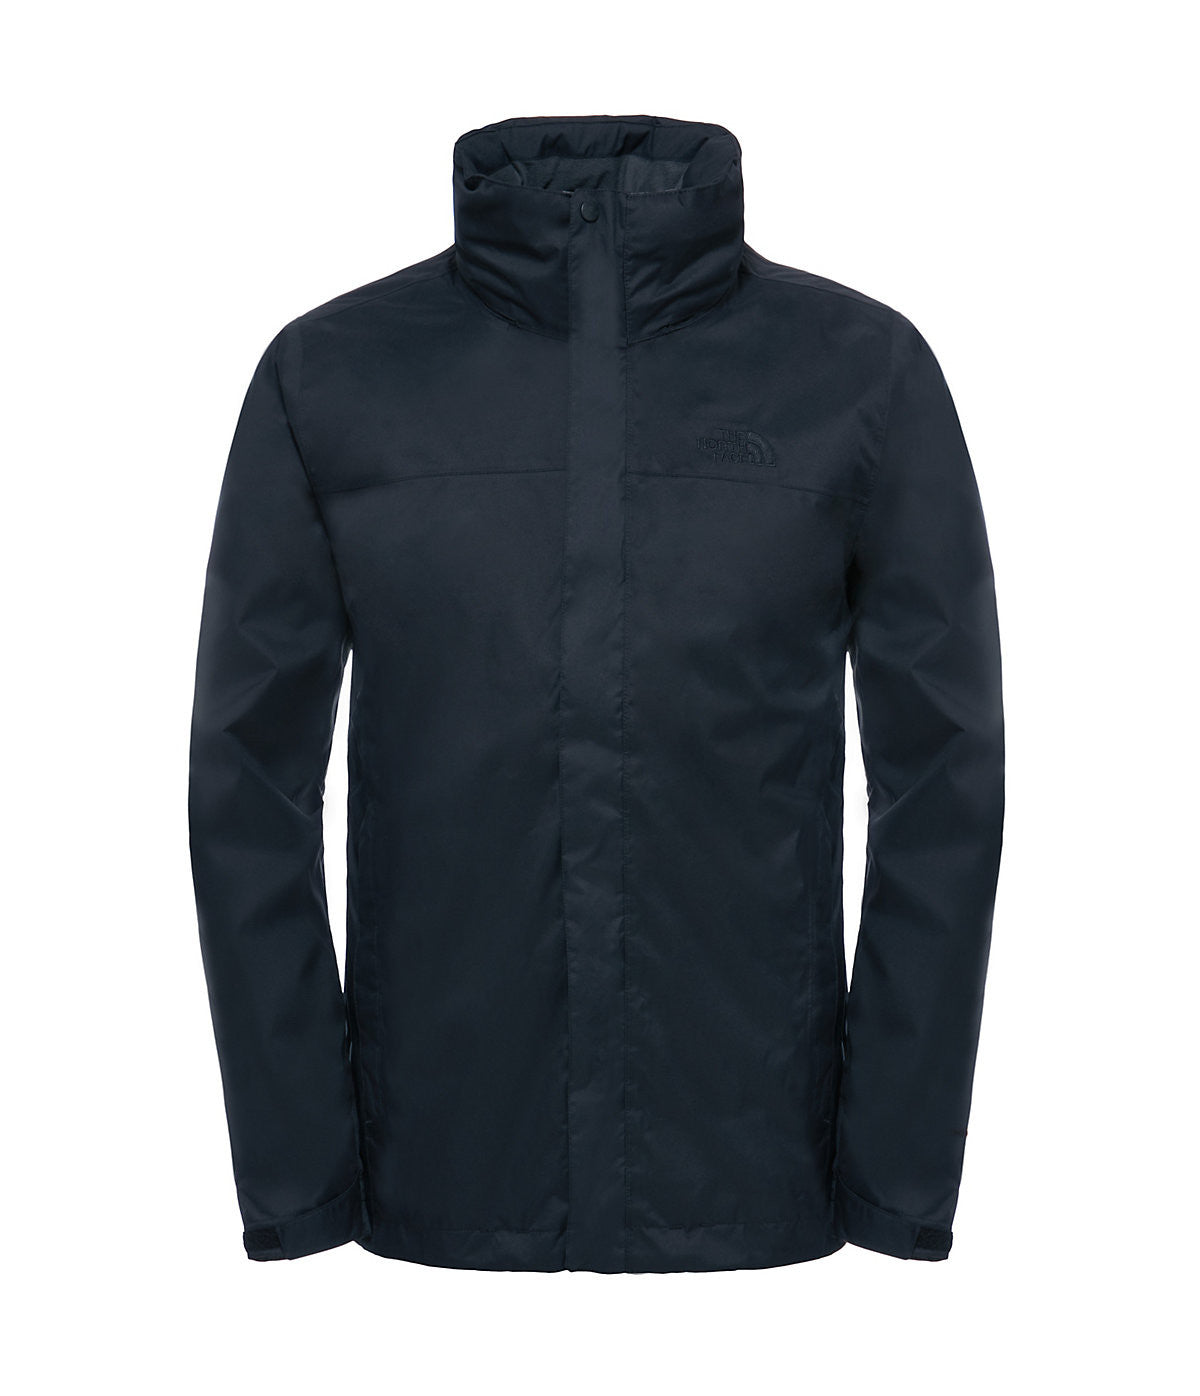 7c21c946a00a The North Face Mens Evolve II Triclimate Jacket - Outdoor Sports